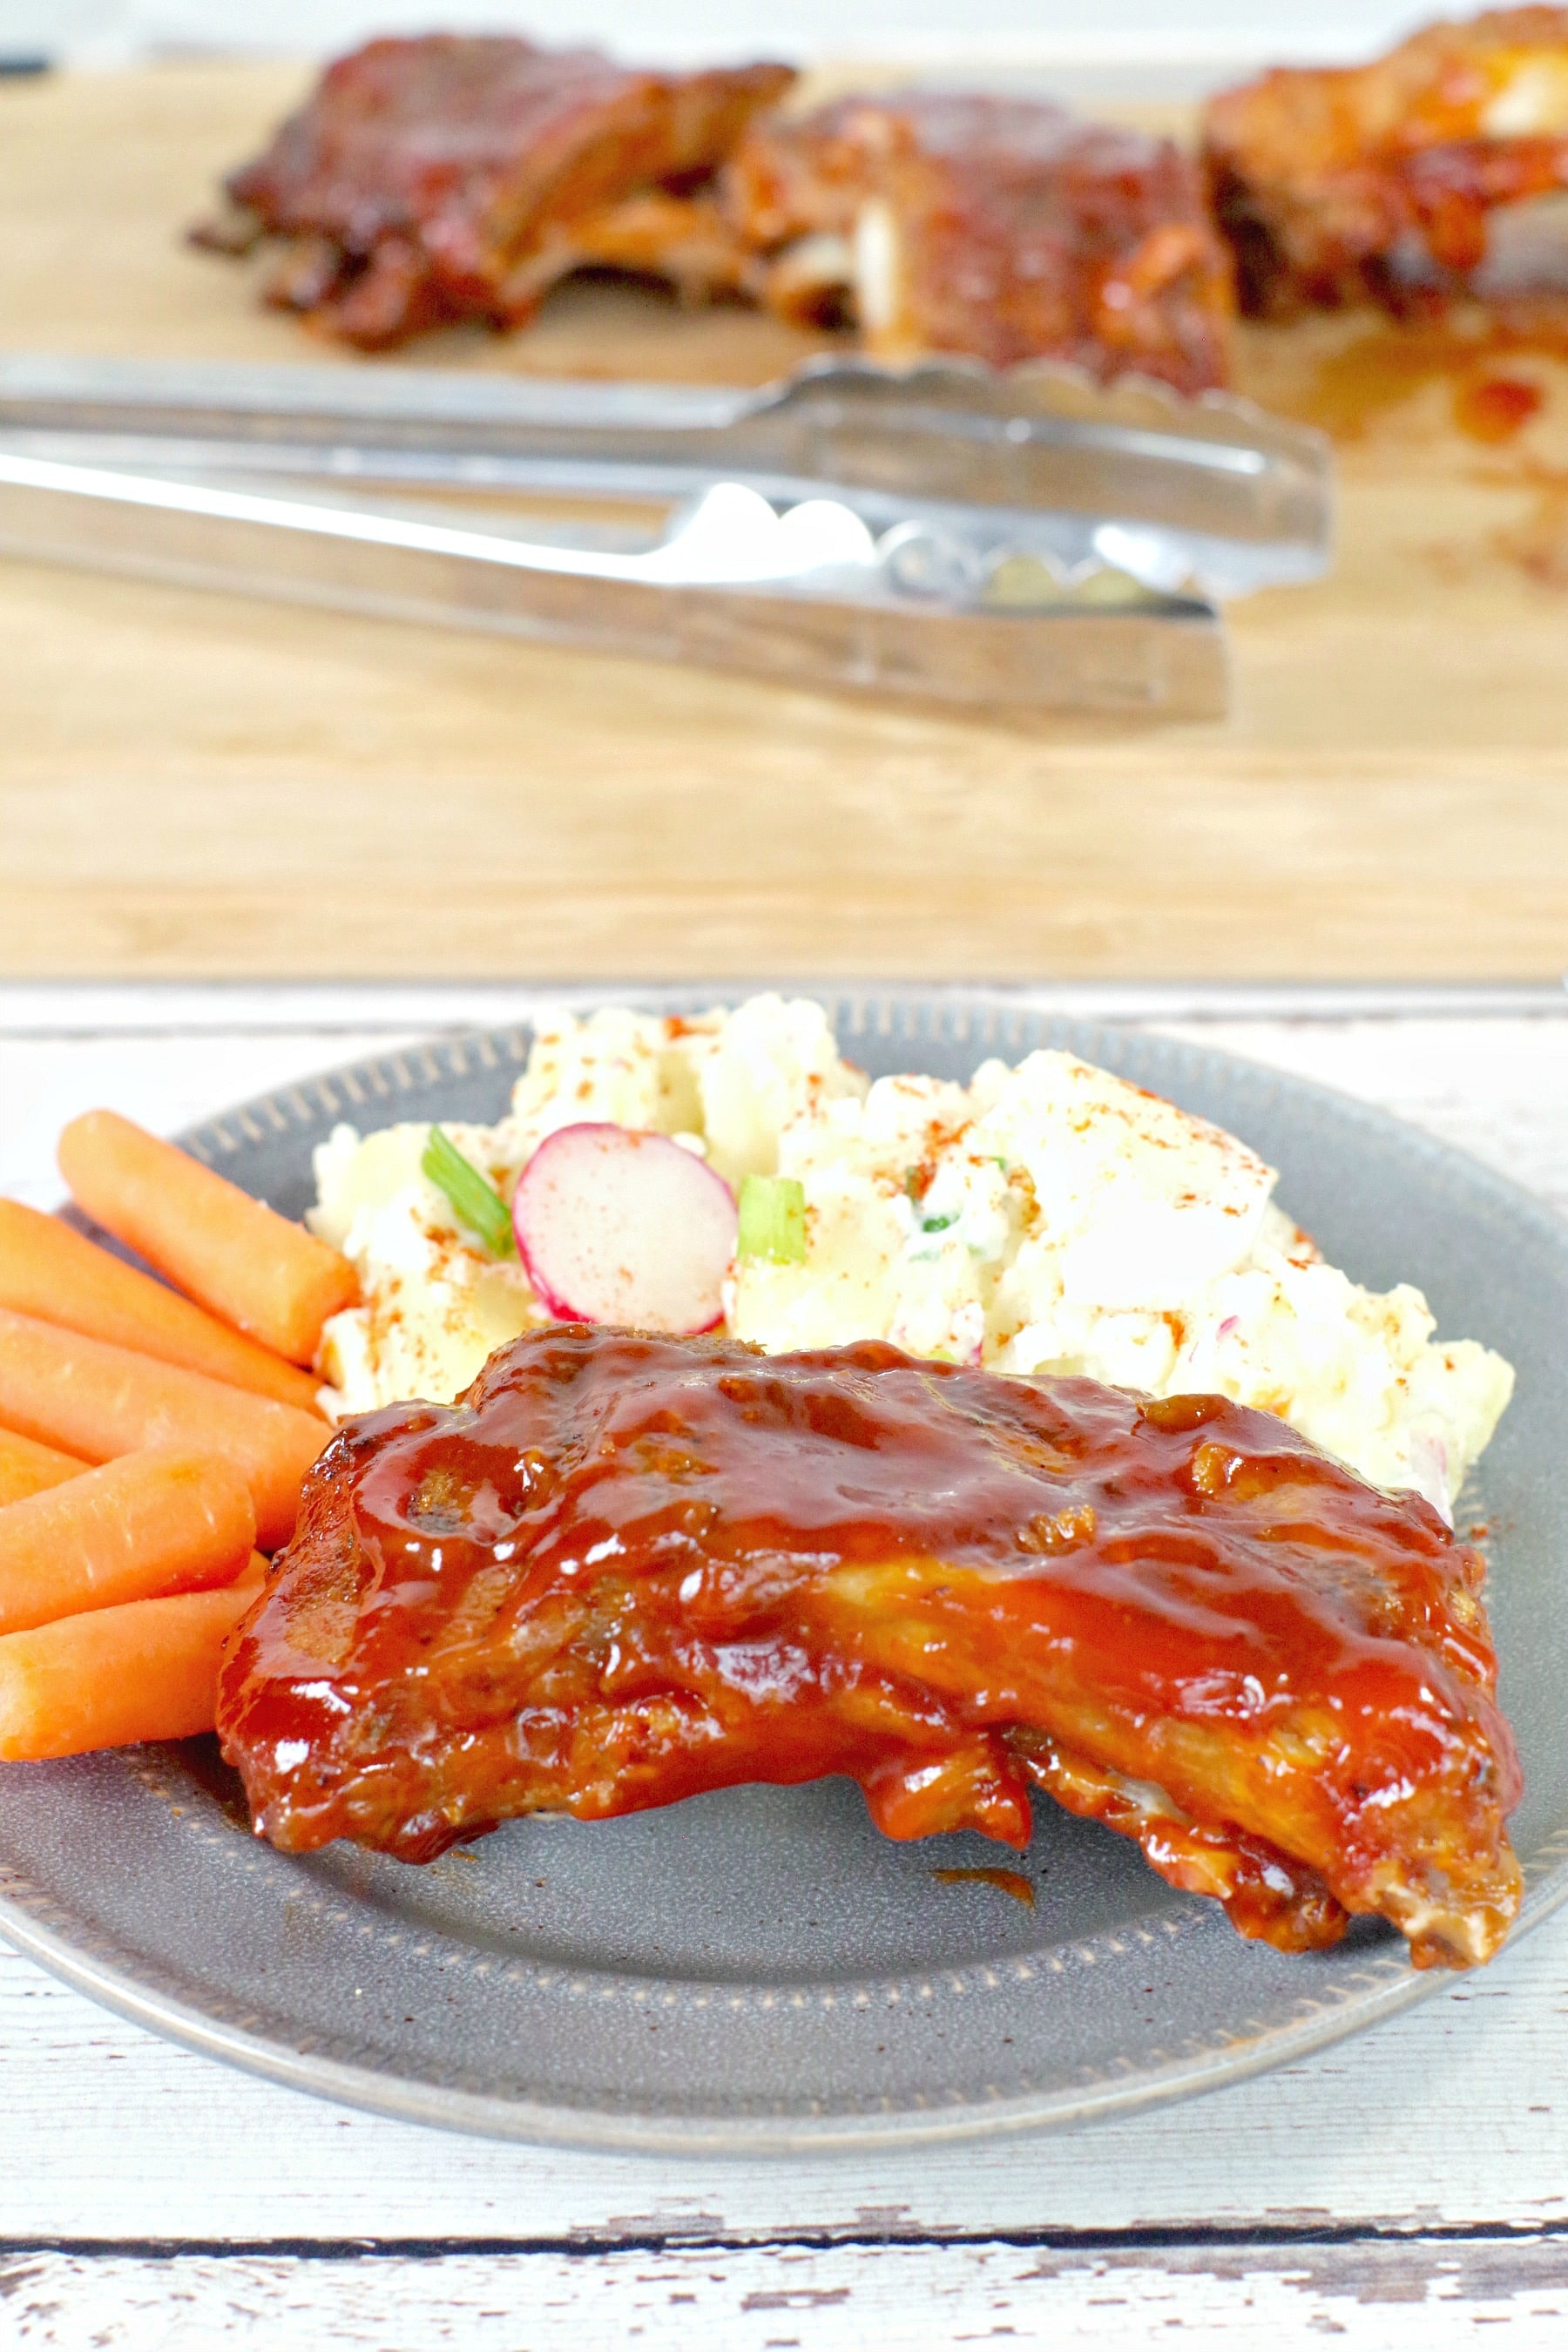 slow cooker BBQ beer ribs on a plate with potato salad and carrots